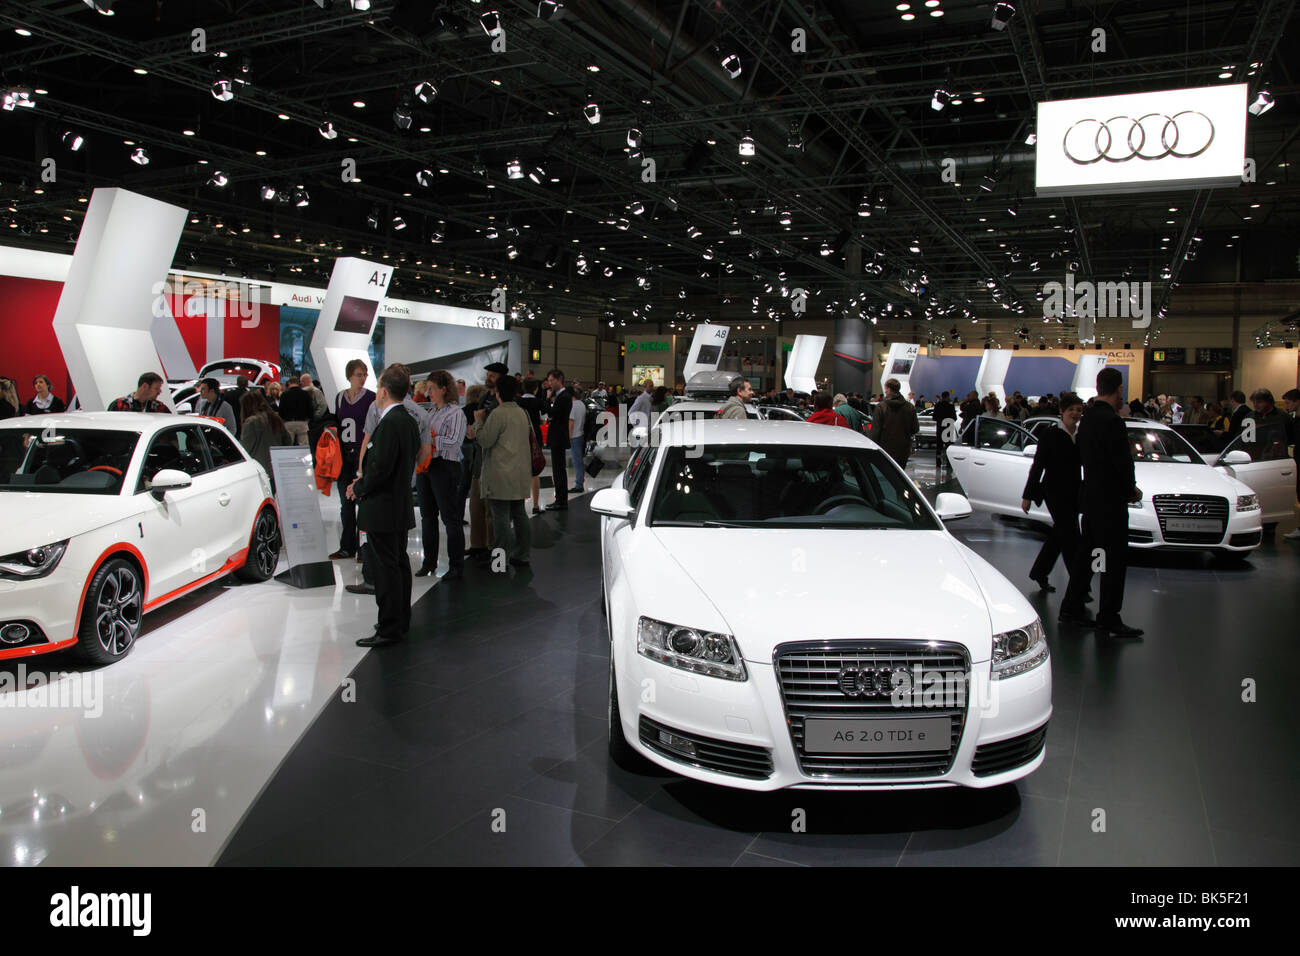 AUDI A5 2.0 TDI at the Auto Mobil International (AMI) - the Motor Show 2010 in Leipzig, Germany - Stock Image